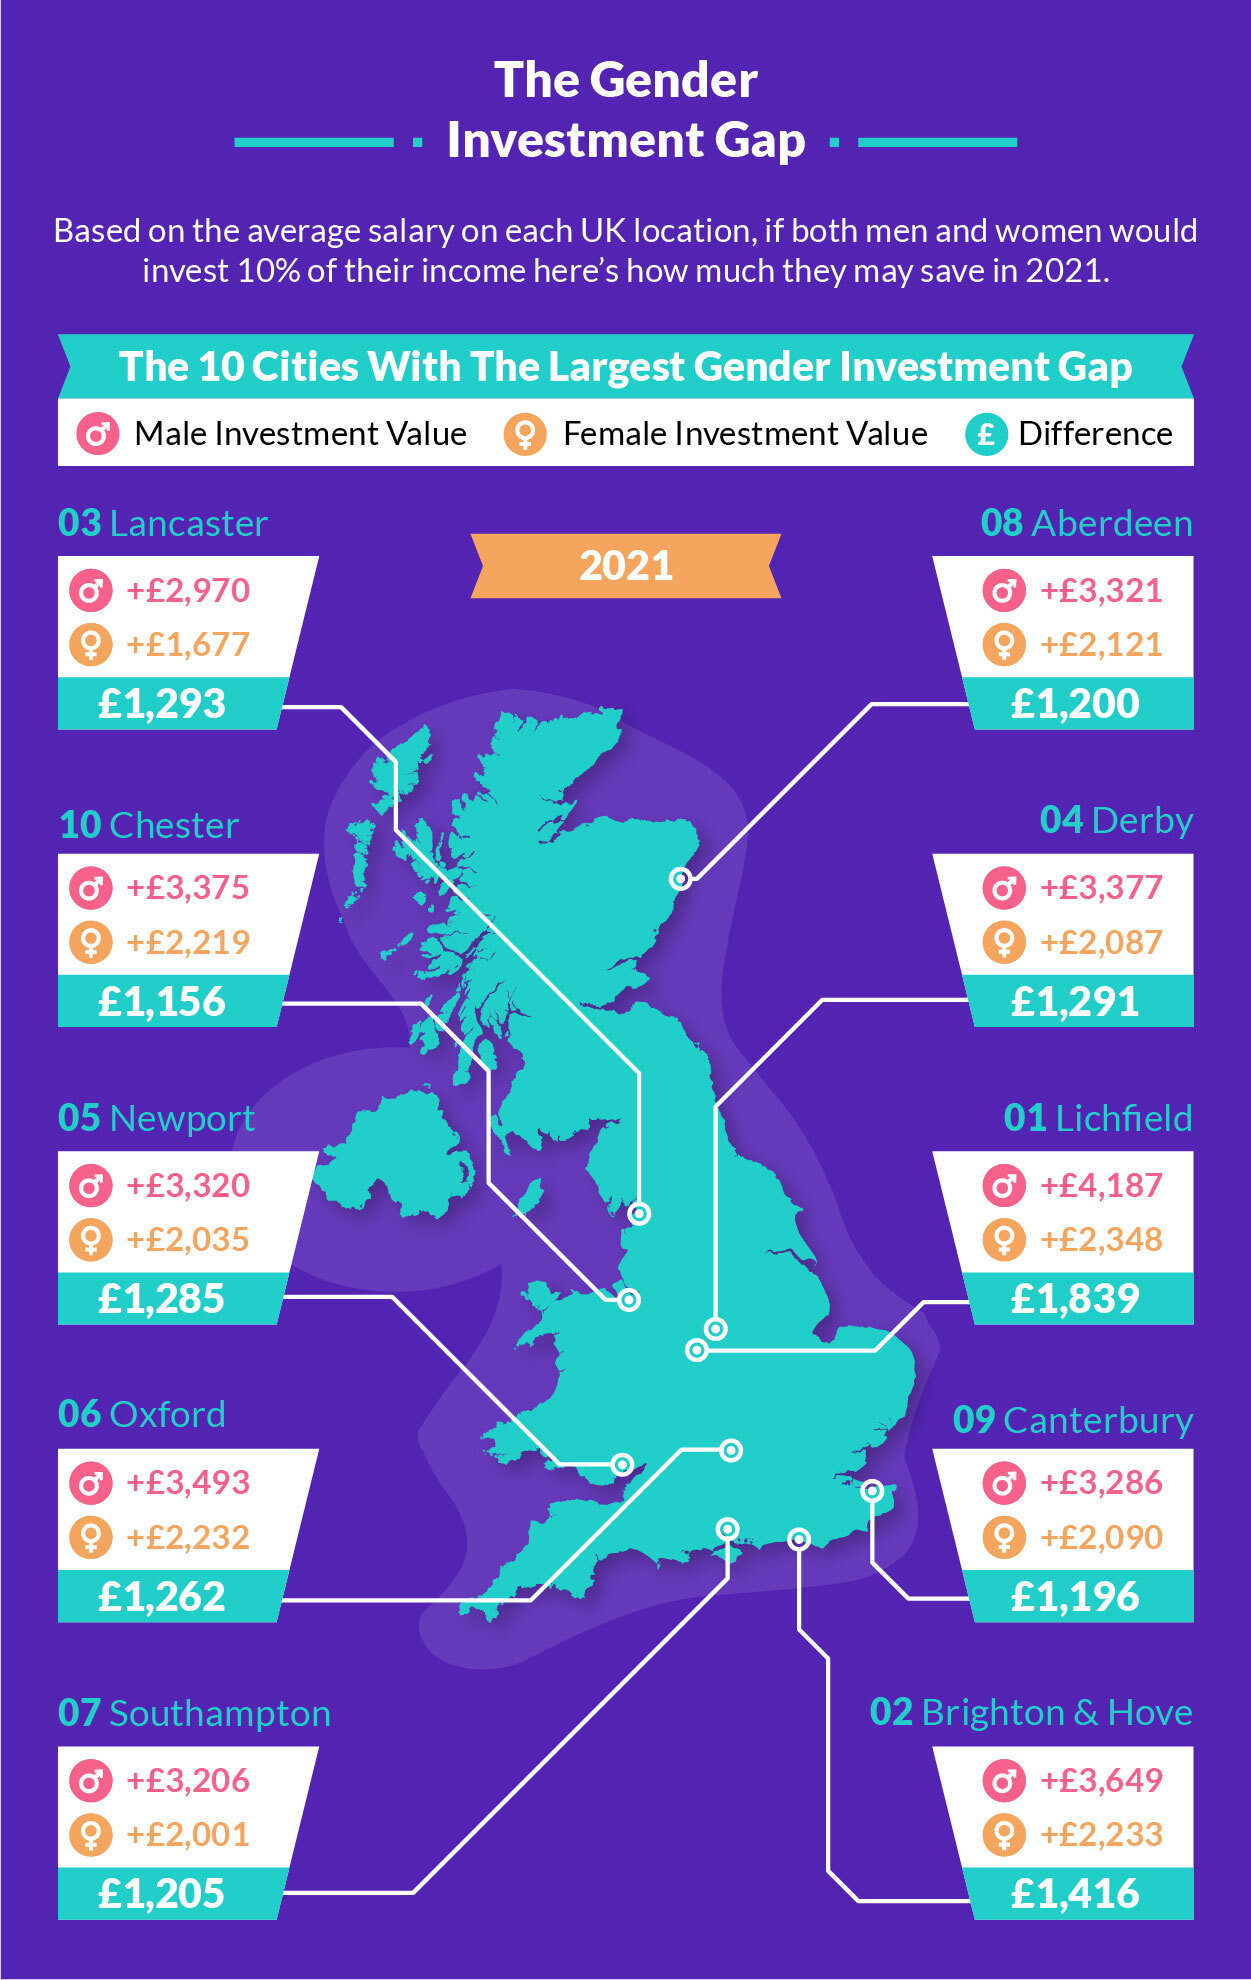 UK investors gender gap - How much men may be saving compared to women in 2021